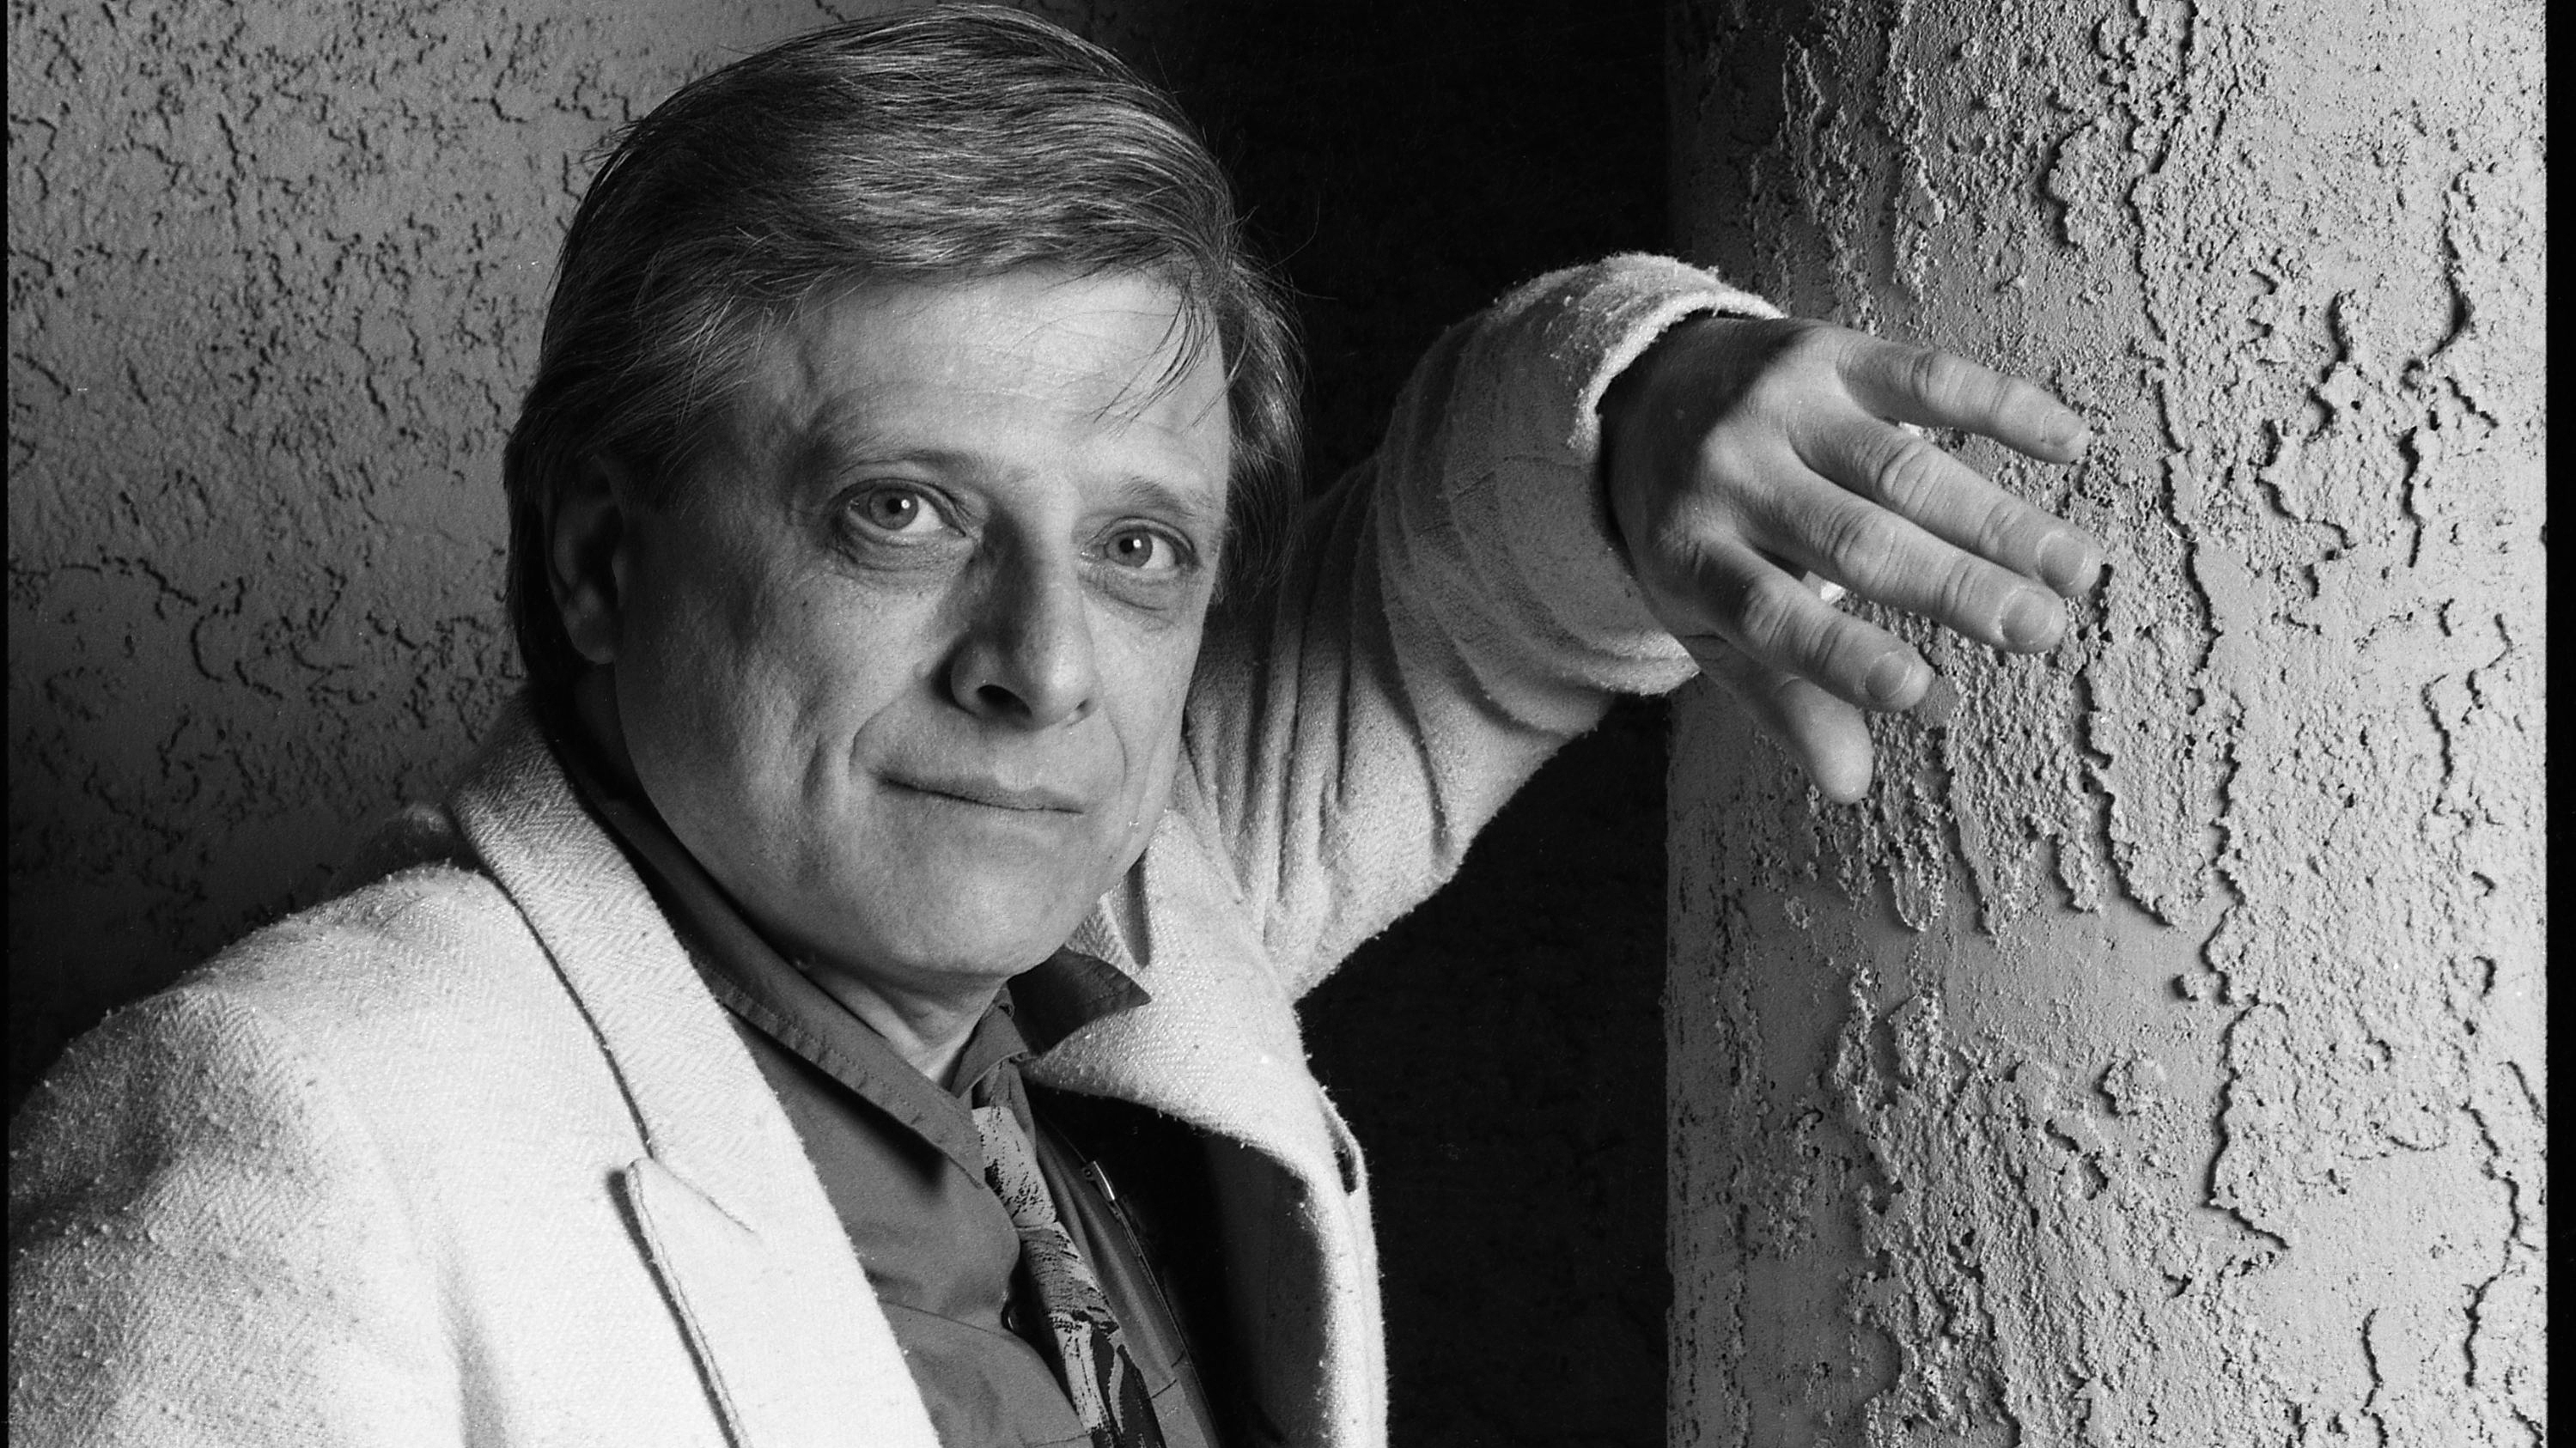 Harlan Ellison, Award-Winning Science Fiction Writer, Dies at 84